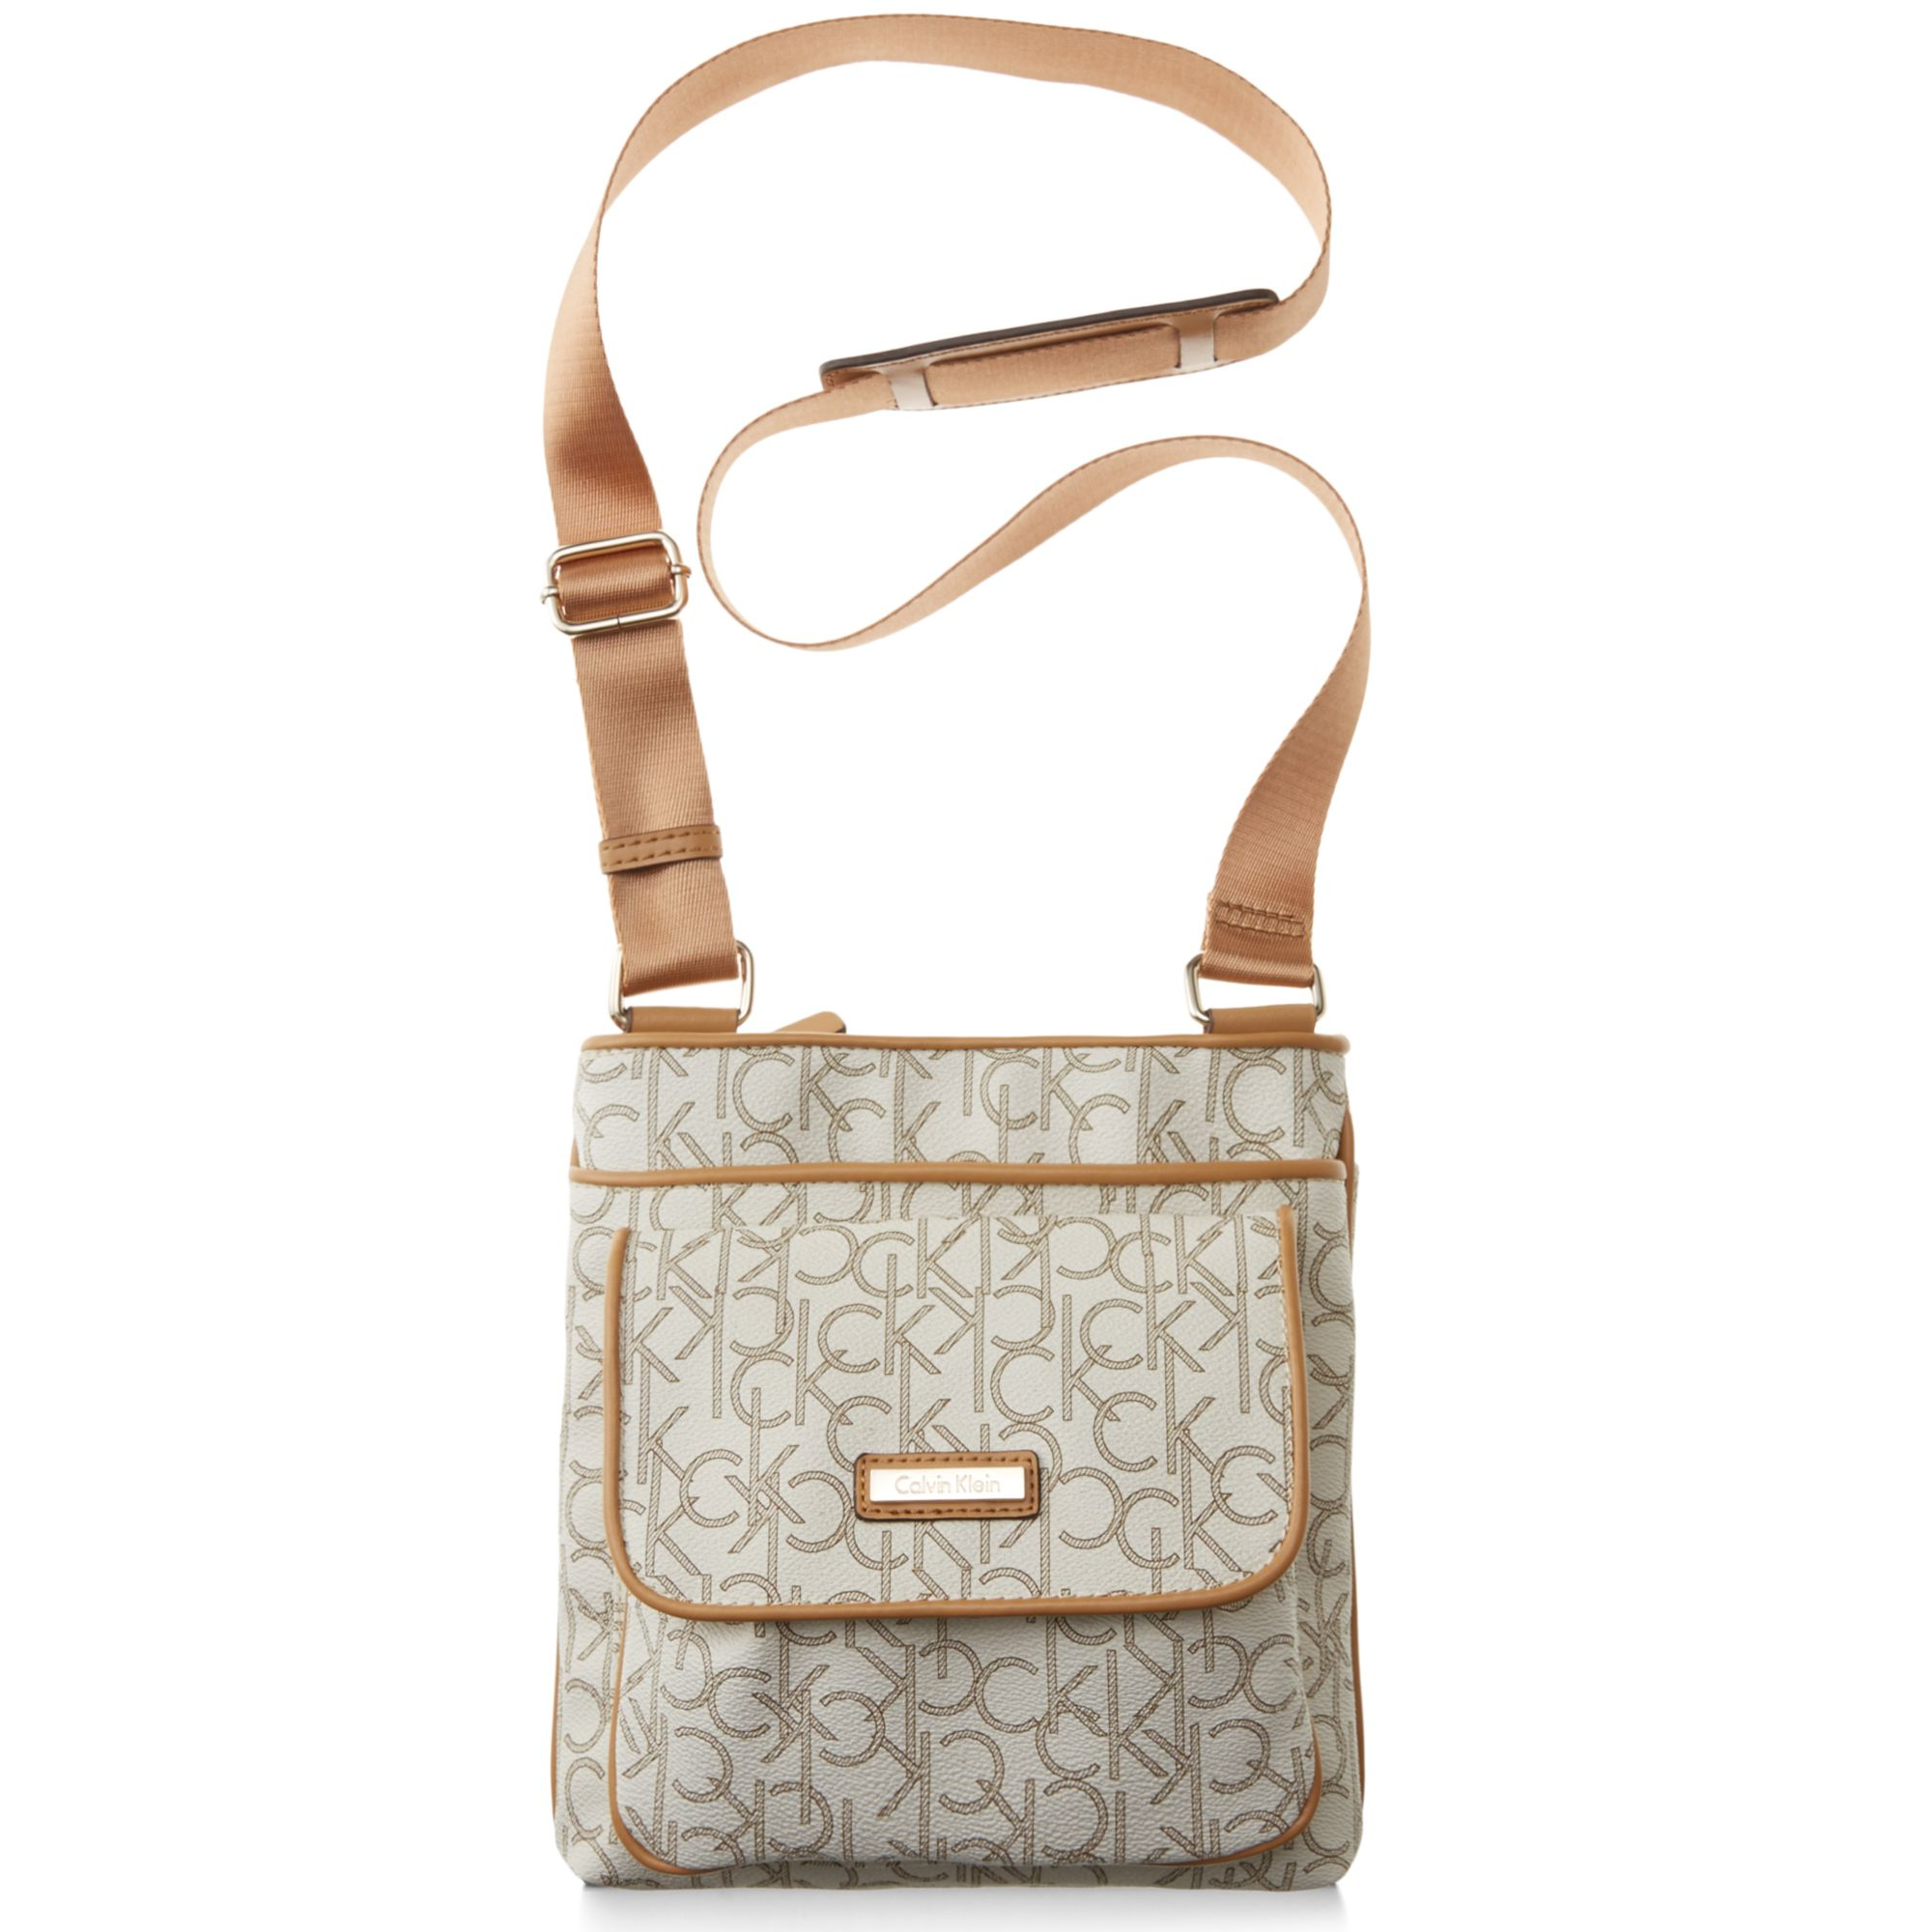 06fa0483dd Gallery. Previously sold at  Macy s · Women s Calvin Klein Crossbody